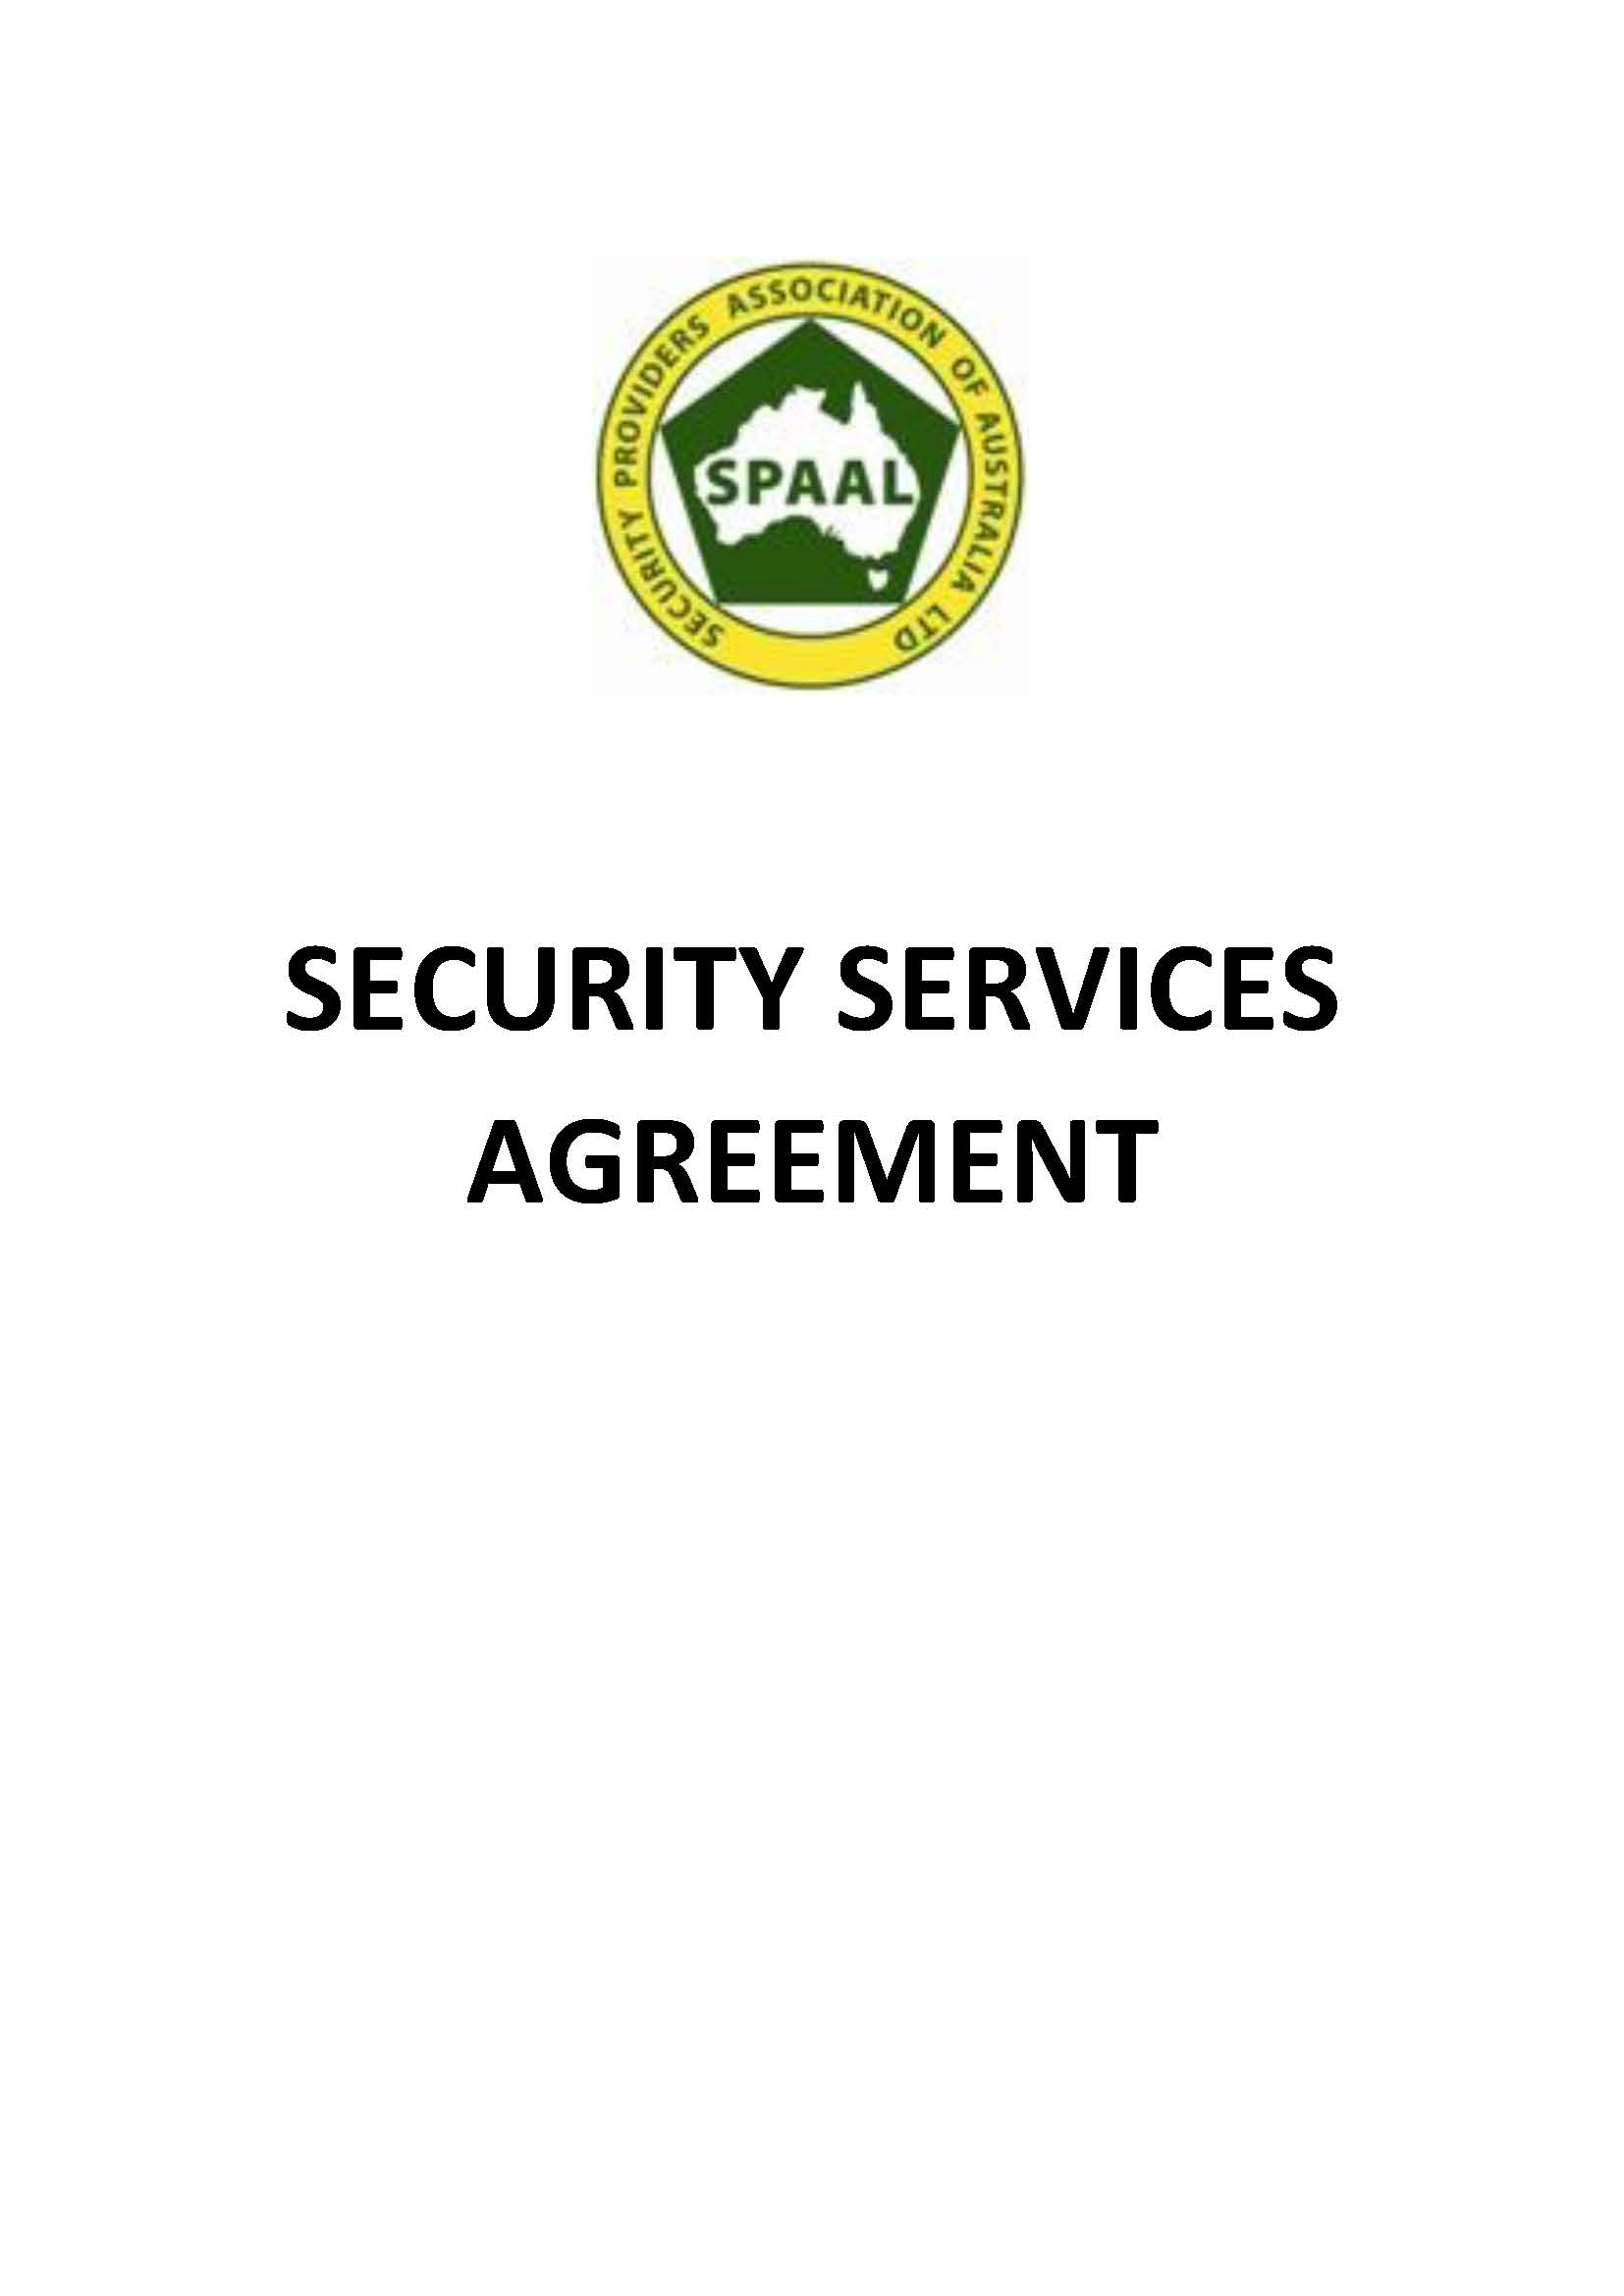 Spaal Security Services Agreement